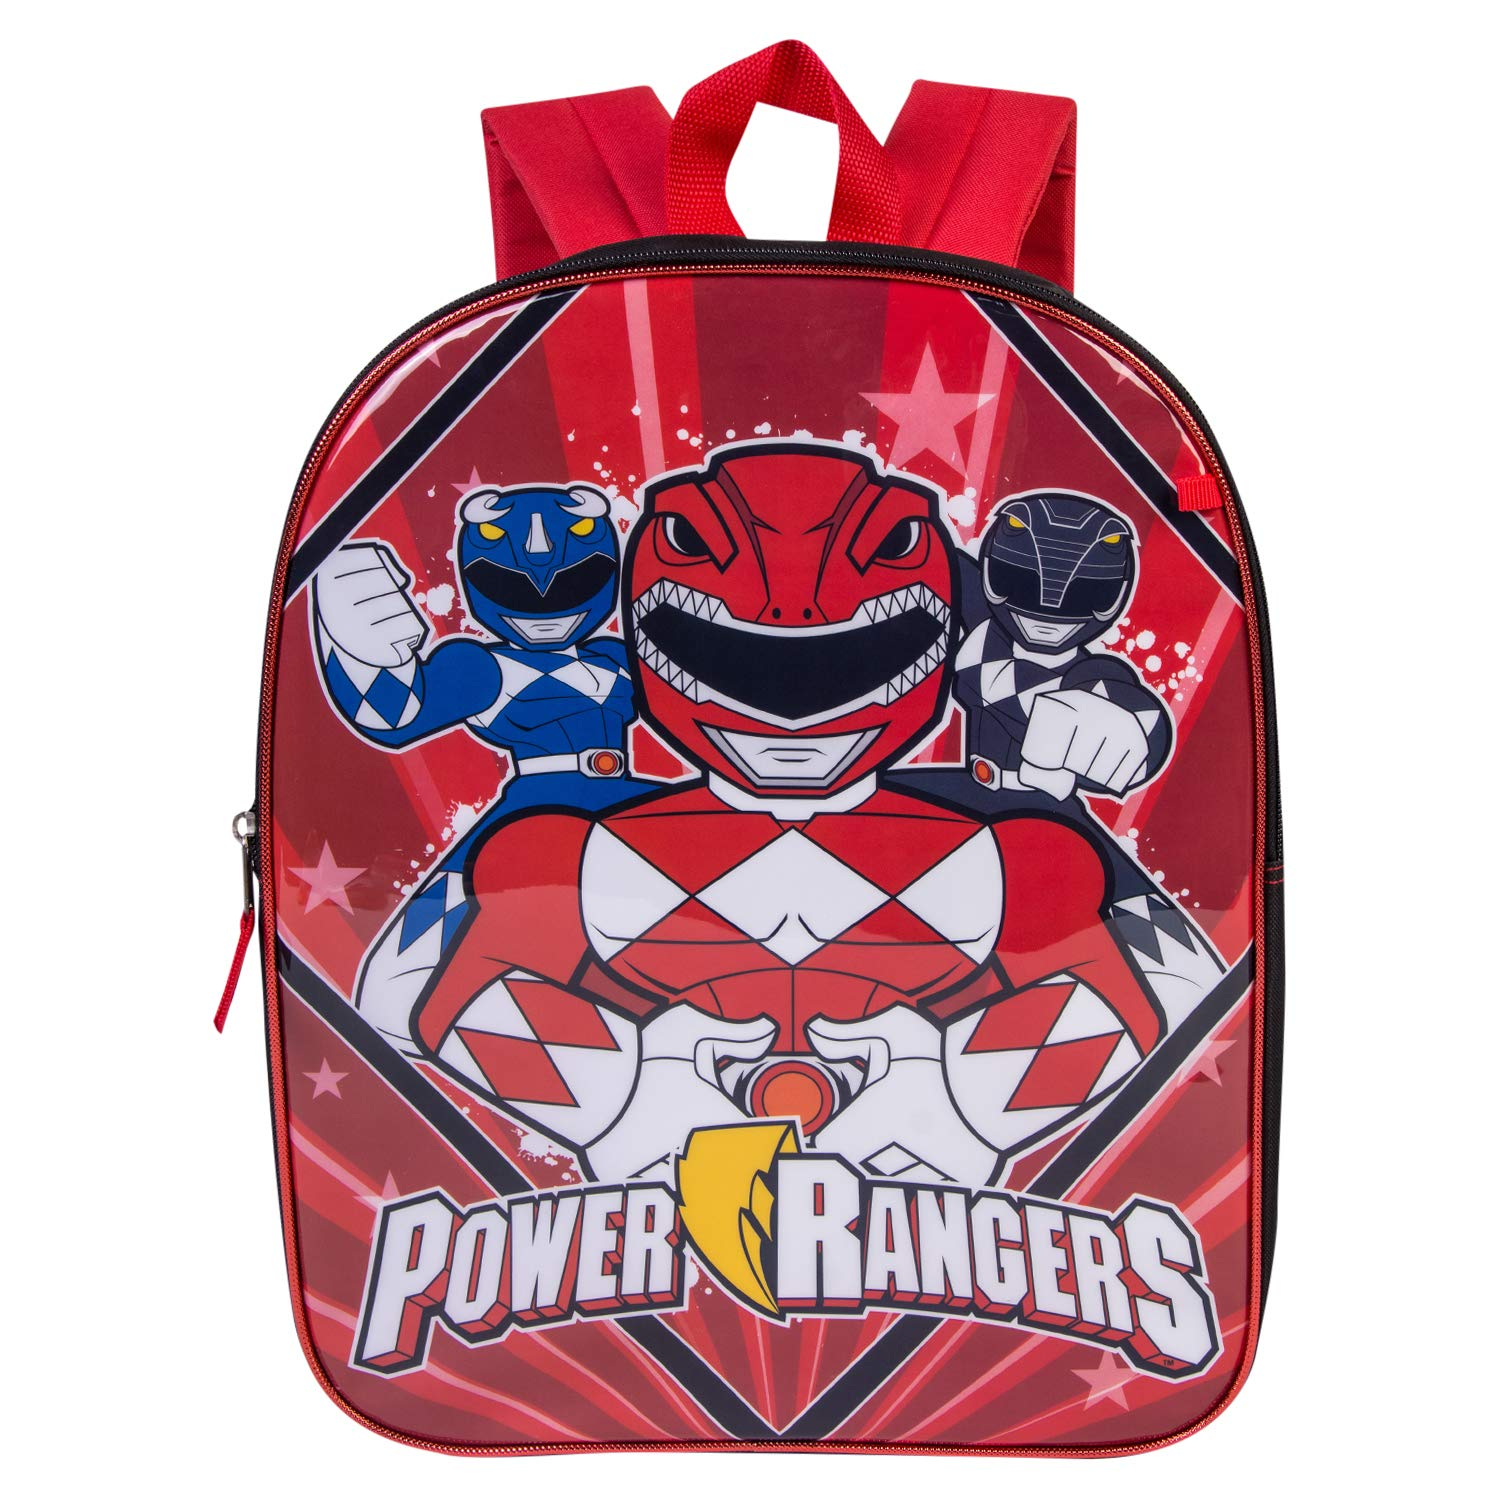 Power Rangers Backpack Combo Set - Power Rangers Boys 3 Piece Backpack Set - Backpack, Waterbottle and Carabina (Black/Red)